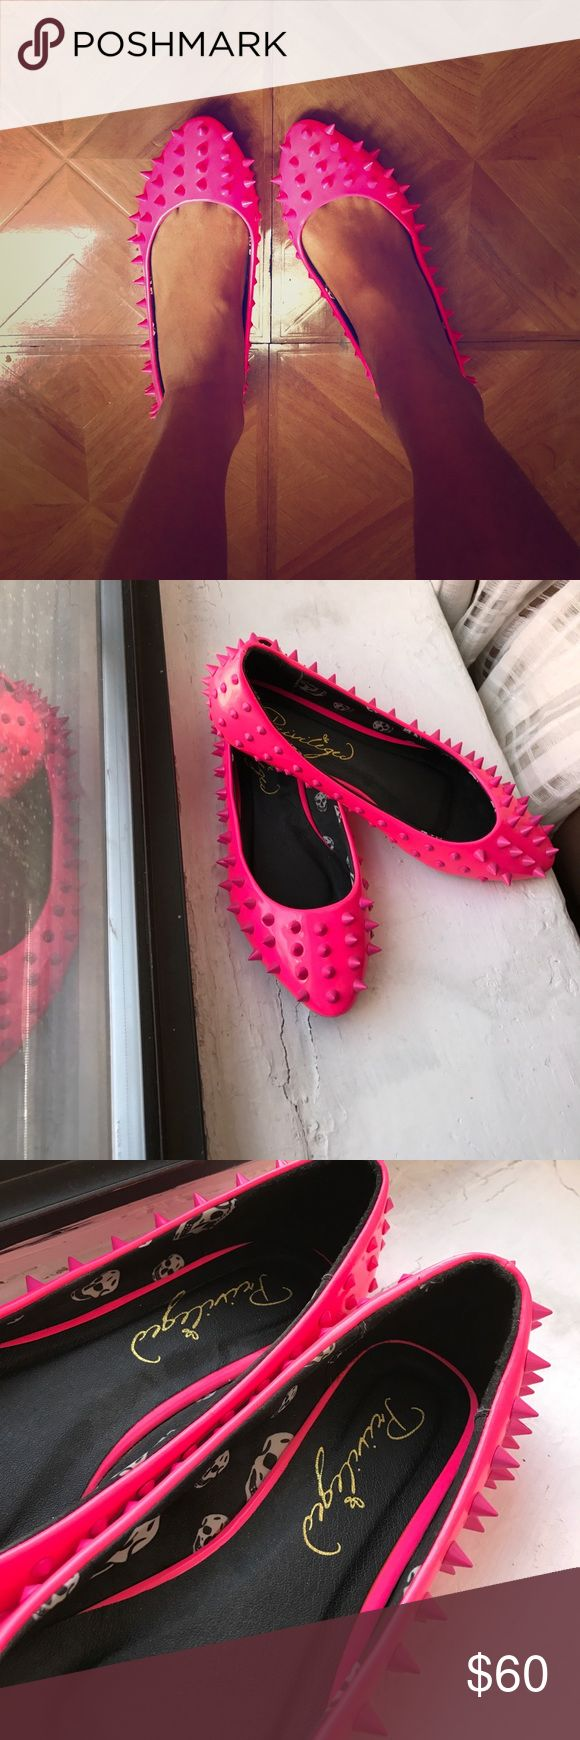 Funky Spiked Flats 👀 Neon pink spiked pumps are definitely an eye catcher 👀 I've always loved them so much that I didn't even want to wear them but I think it's time to give it to someone else who will wear them!!, no box. privileged Shoes Flats & Loafers